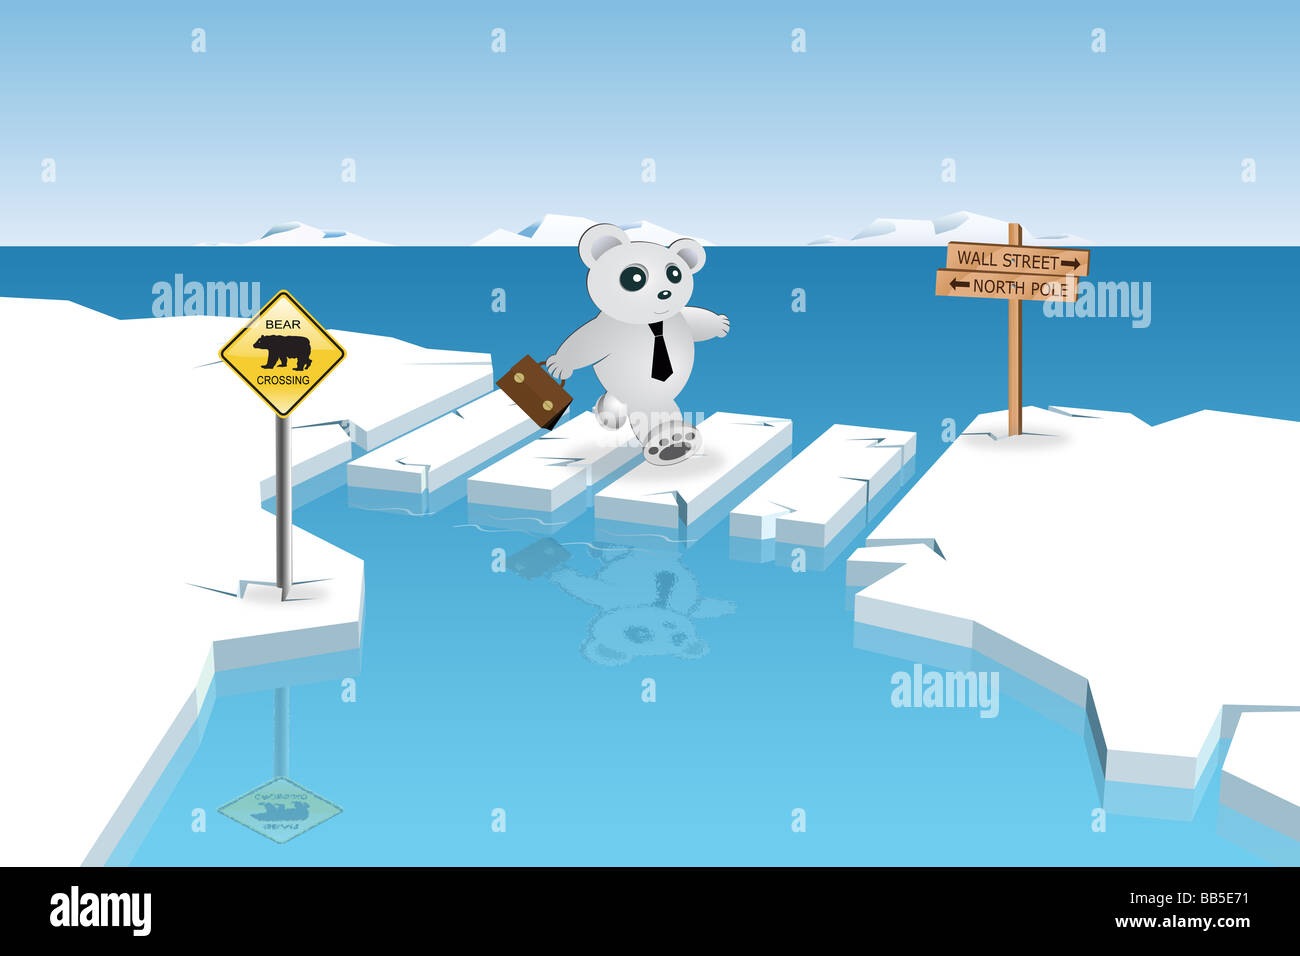 Bear Market is Crossing - Stock Image